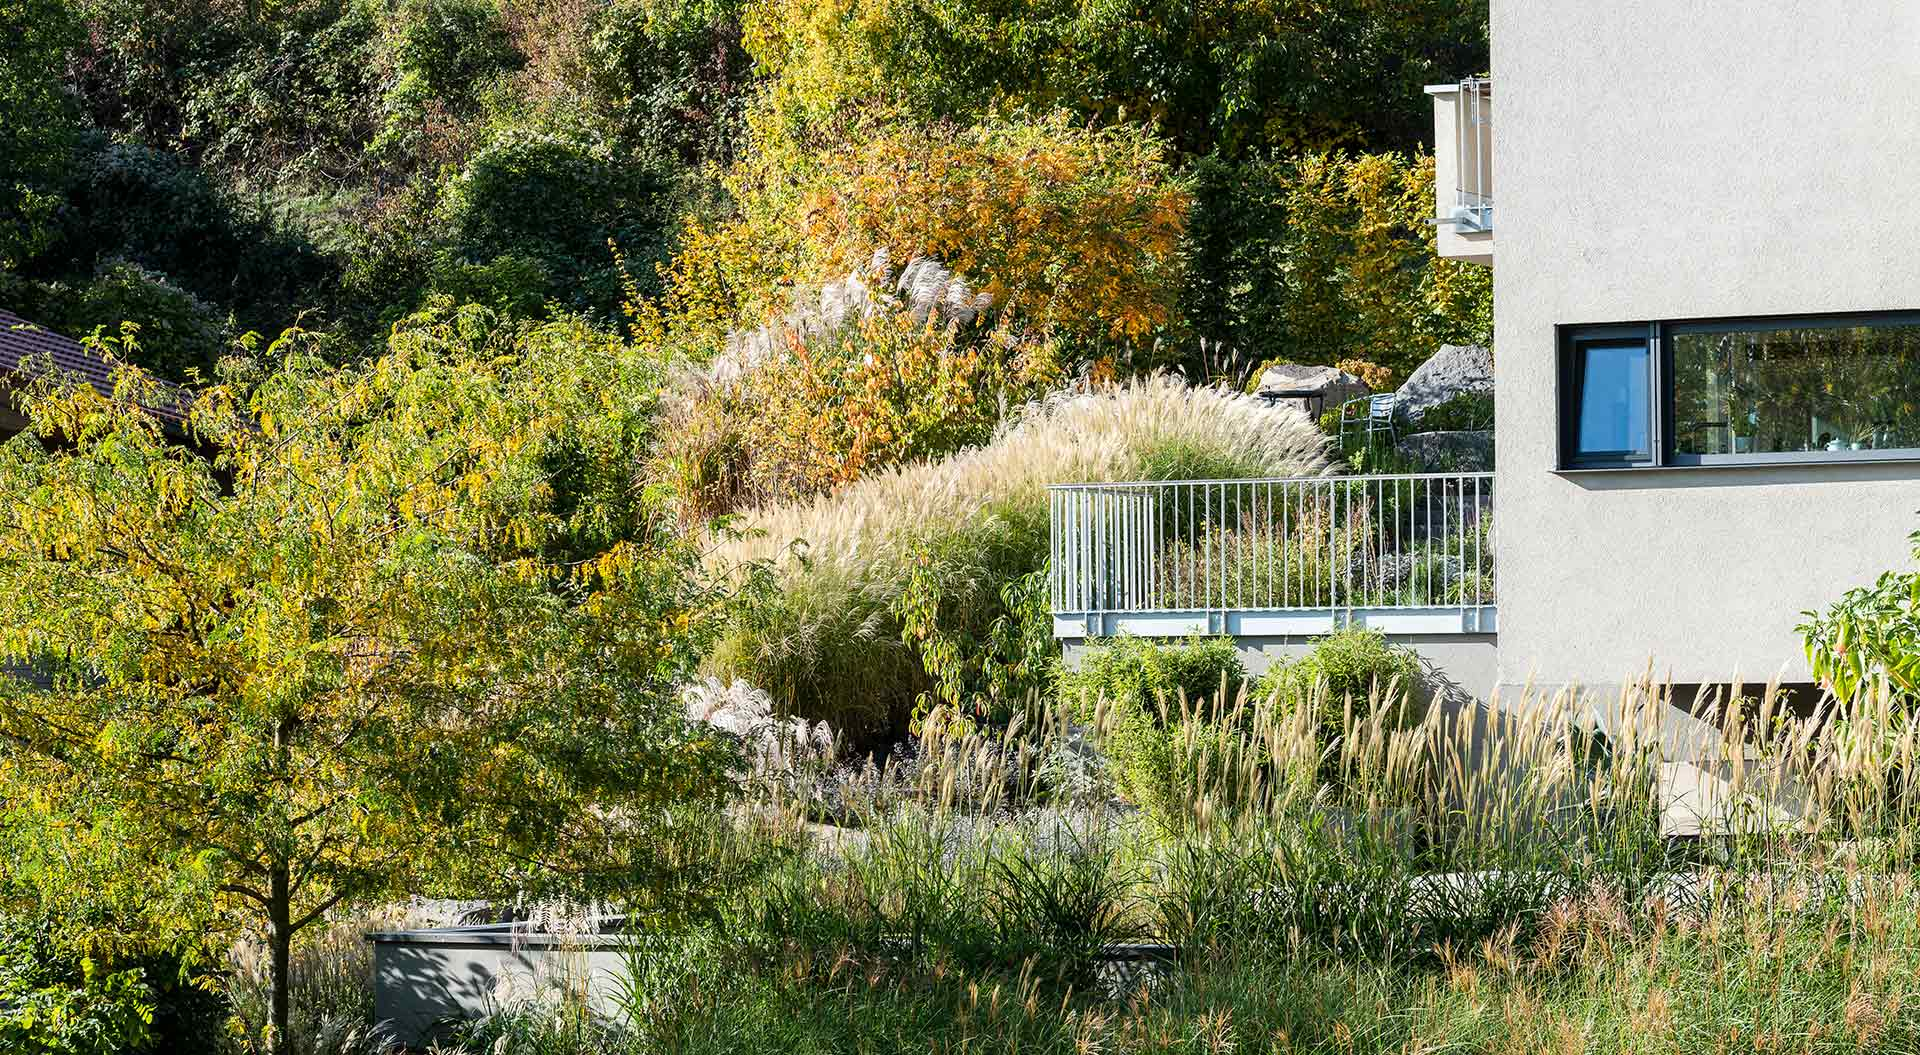 Terrace or balcony blends nicely into the natural garden